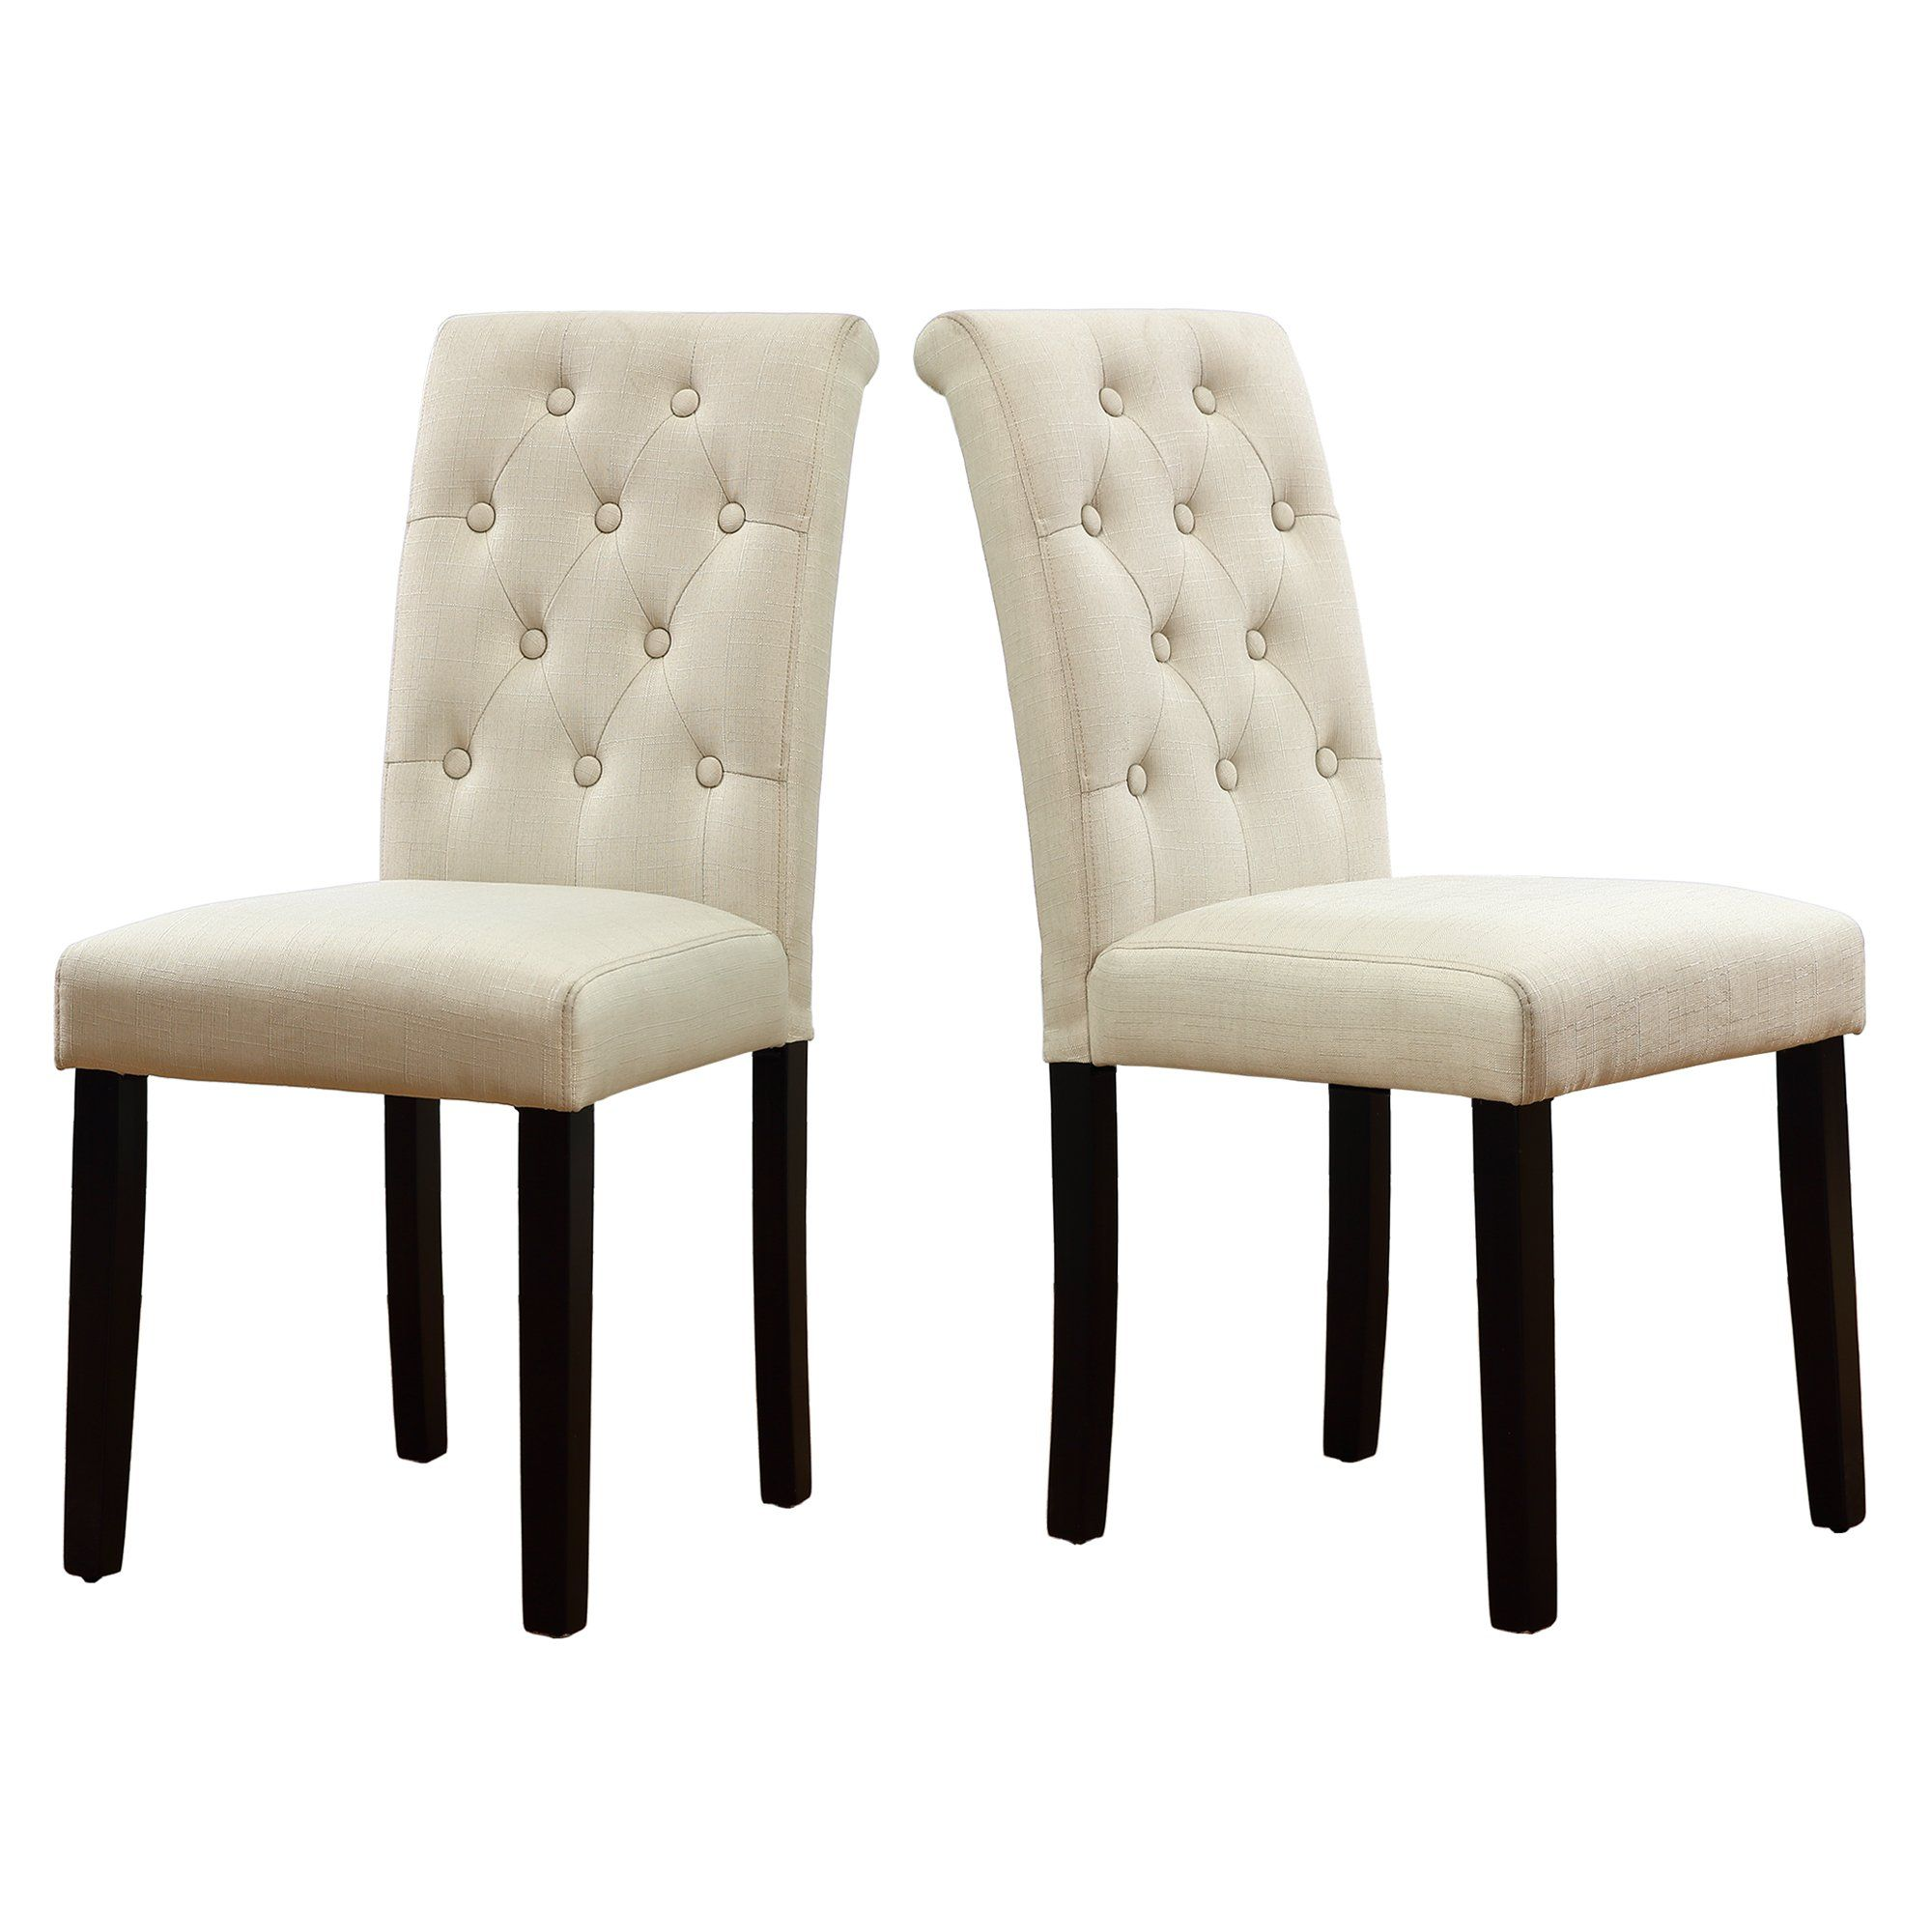 Lssbought Buttontufted Upholstered Fabric Dining Chairs With Solid